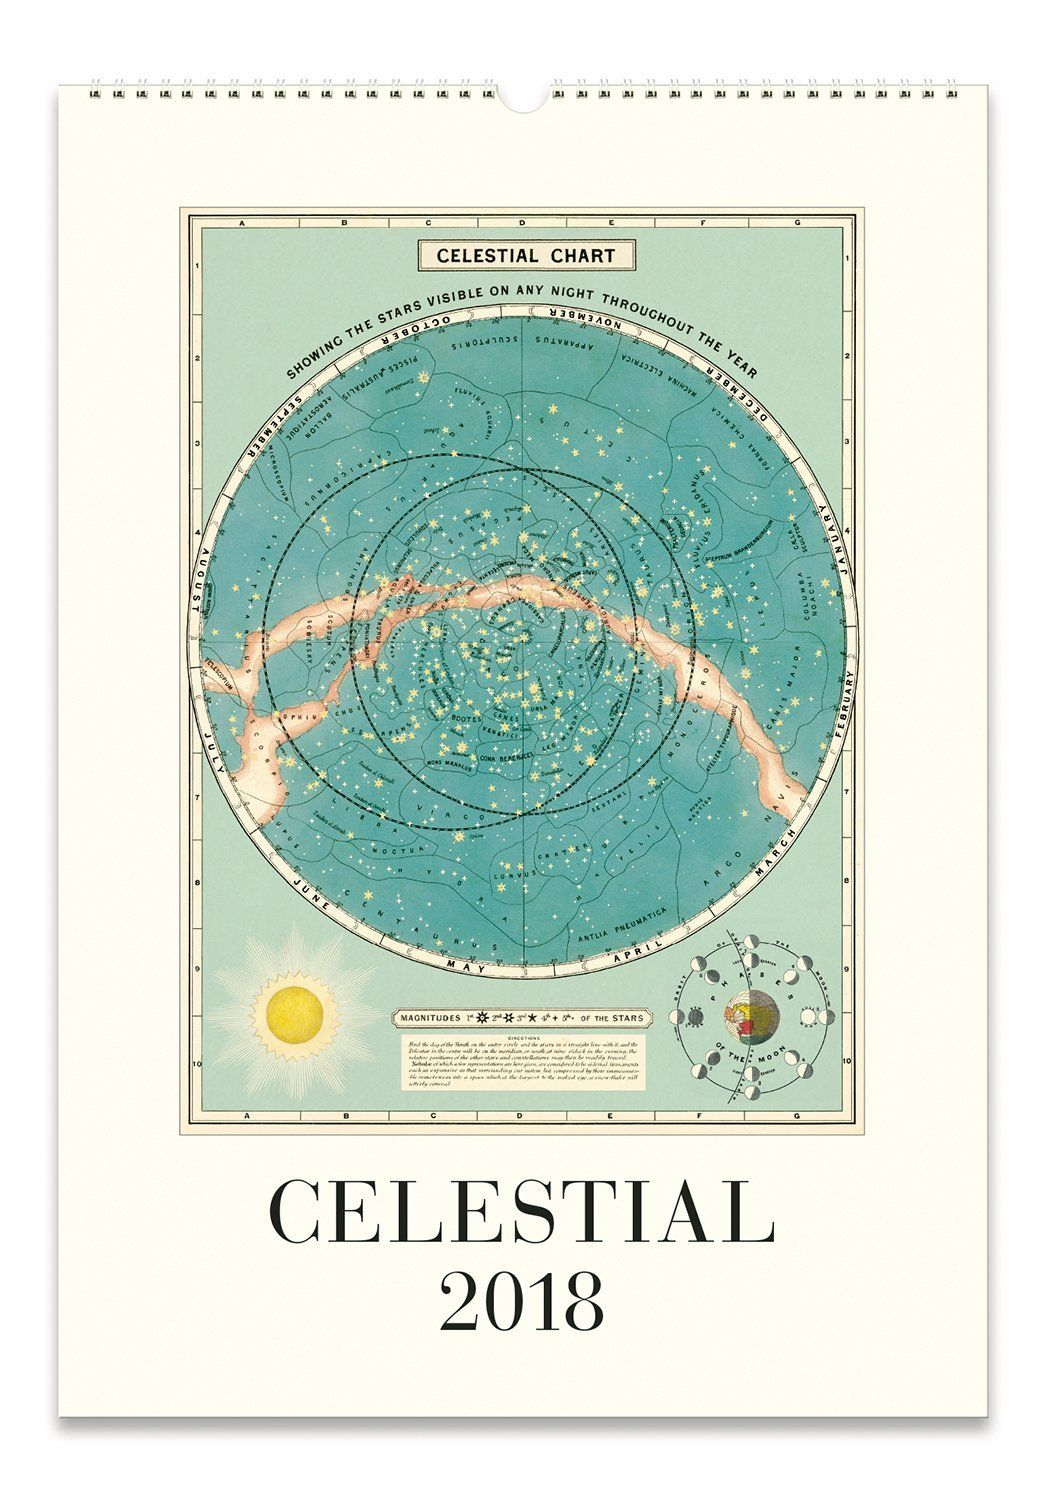 Cavallini Papers Celestial 2018 Wall Art Calendar: Home & Kitchen ...